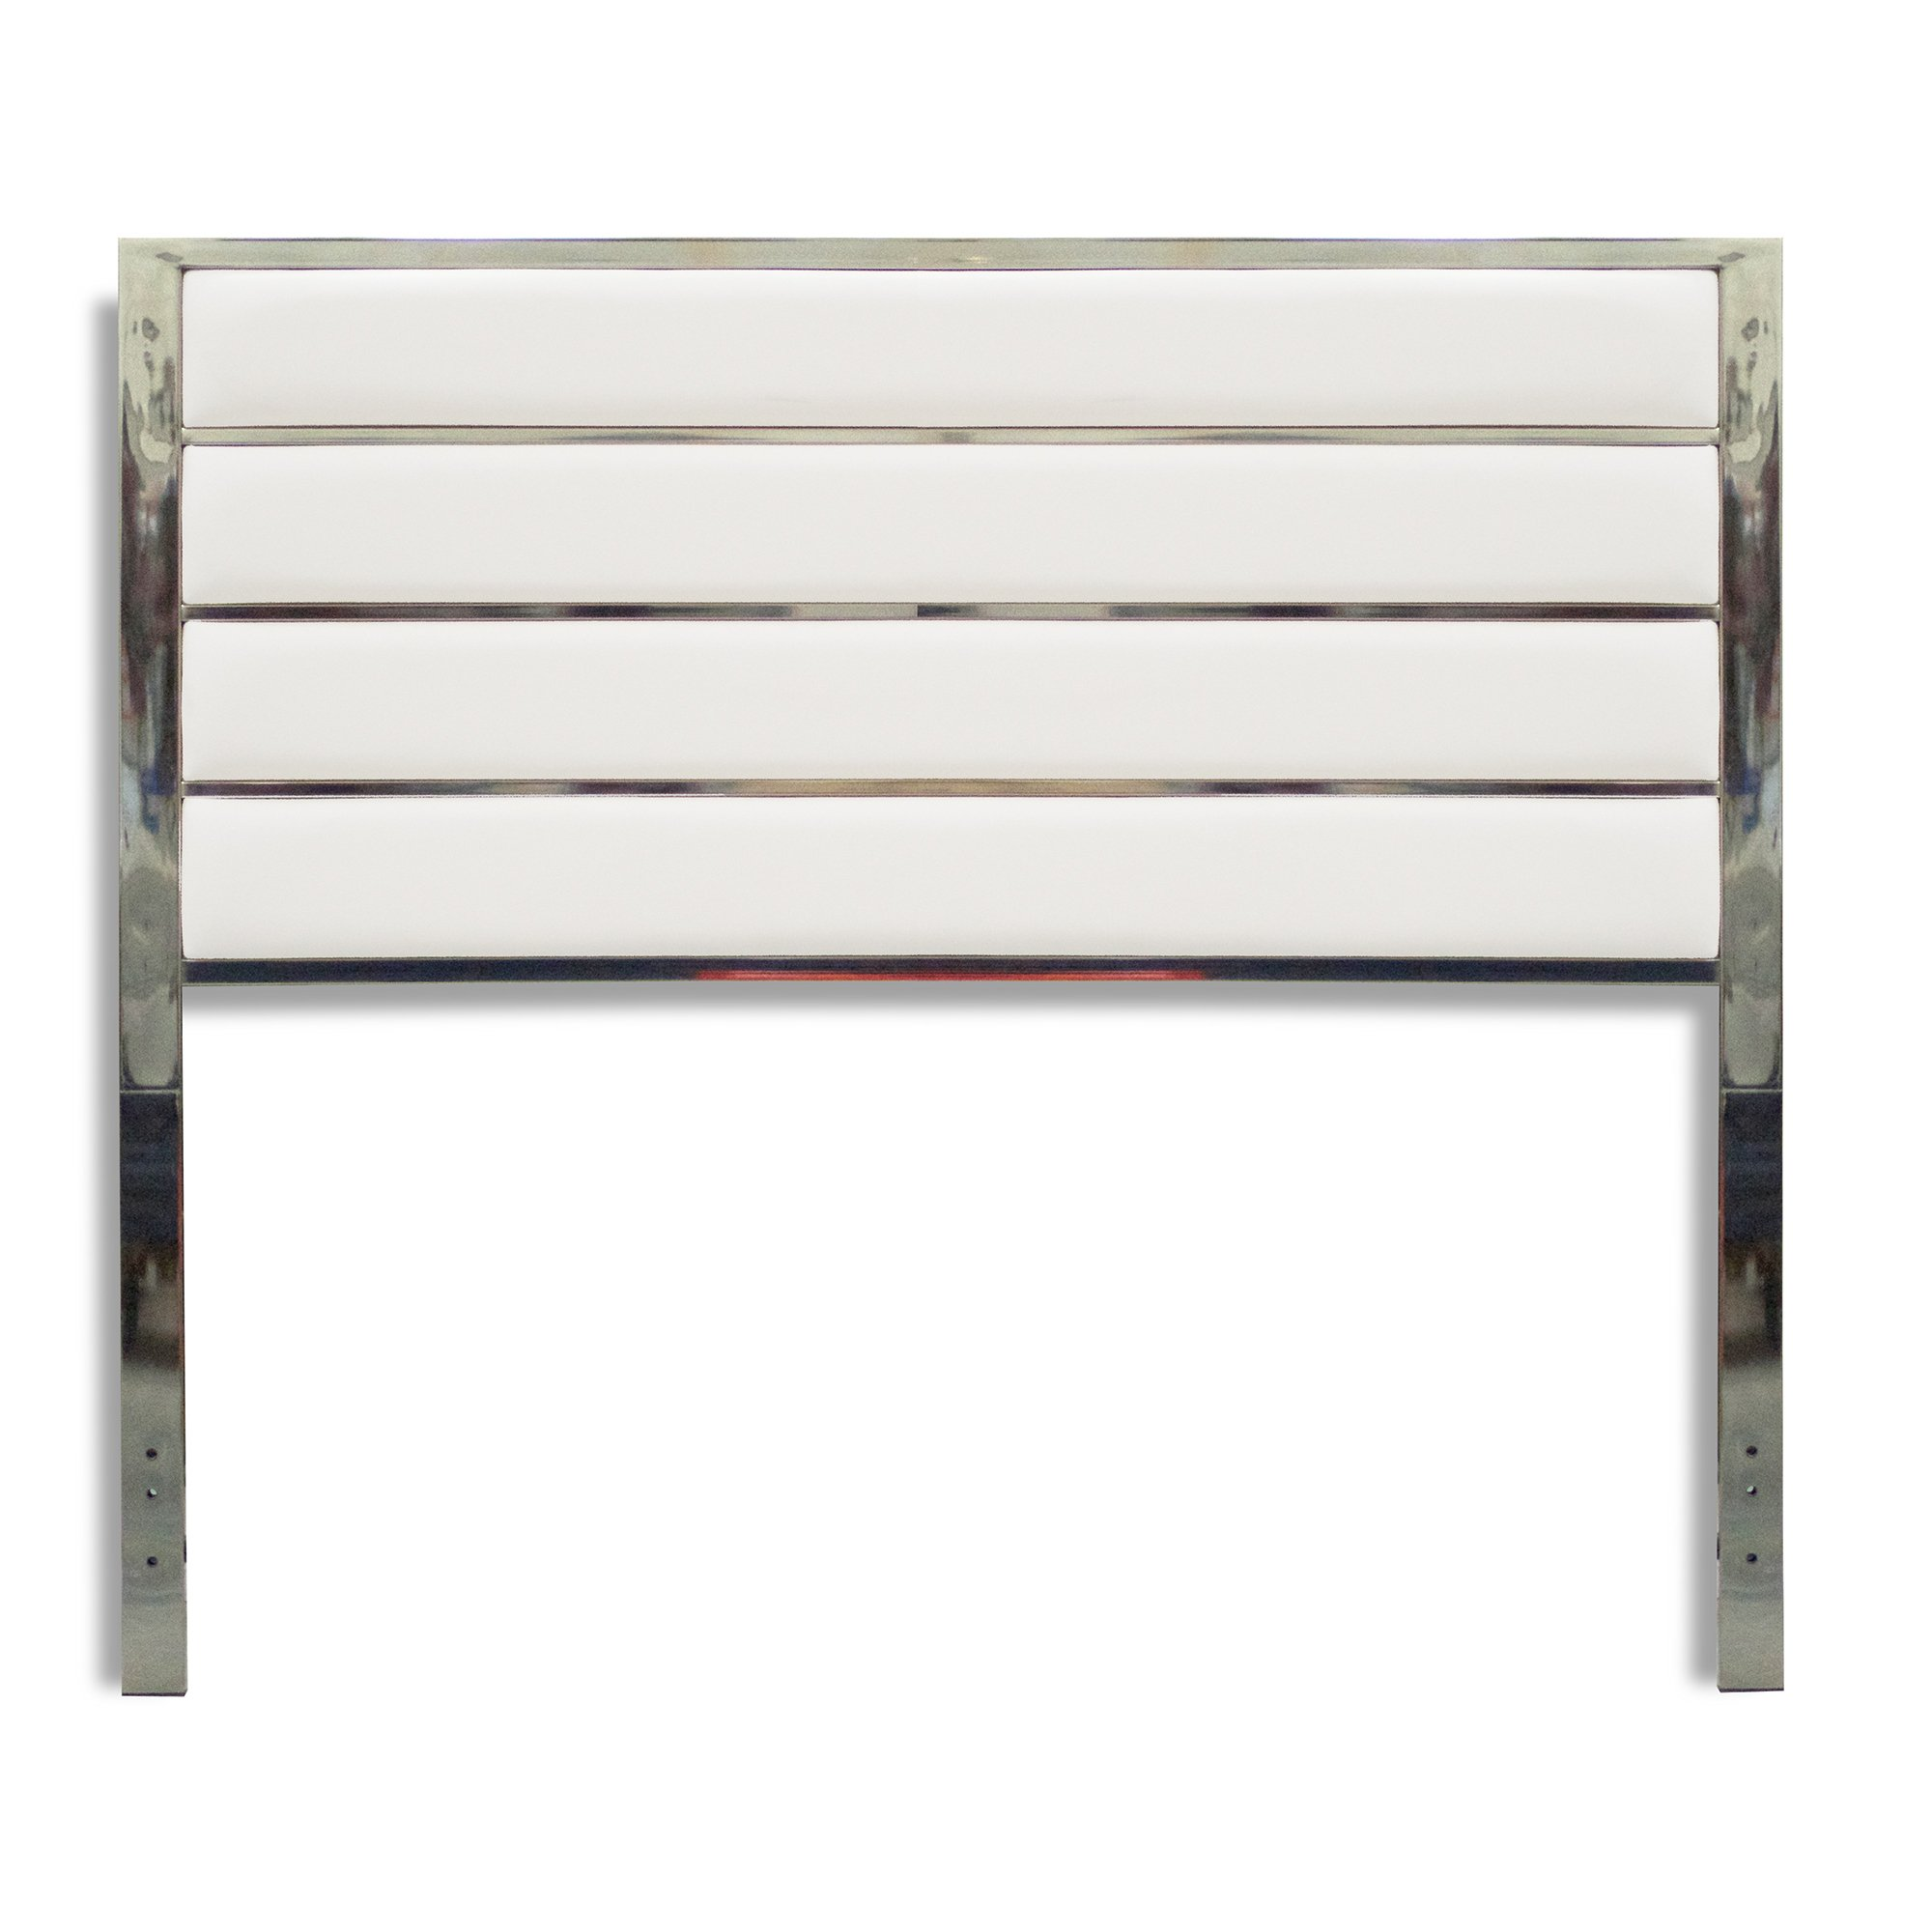 Fashion Bed Group B72526 Impulse Metal Headboard Panel with White Upholstery, Chrome Finish, King by Fashion Bed Group (Image #3)